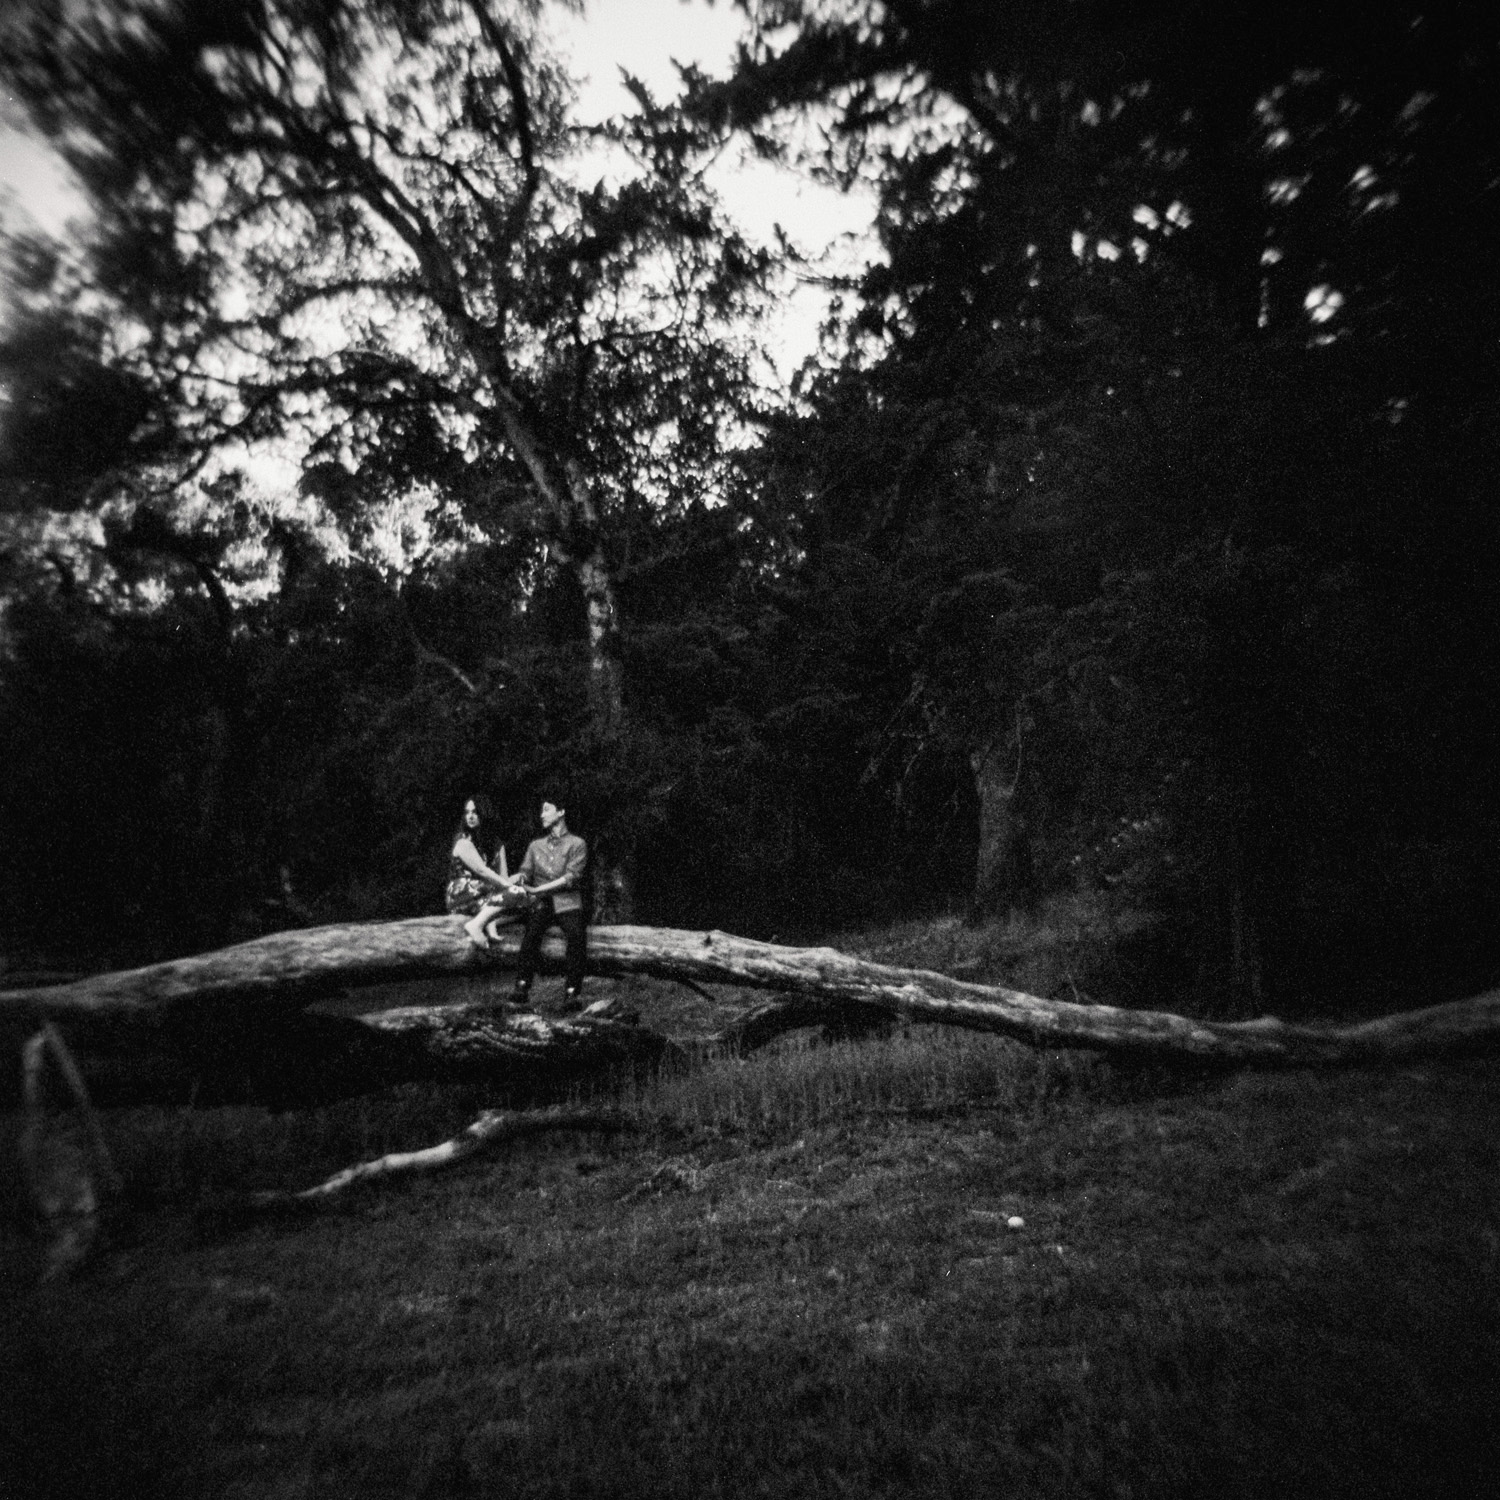 engagement photo in nature couple sits on fallen tree in forest shot on black and white film